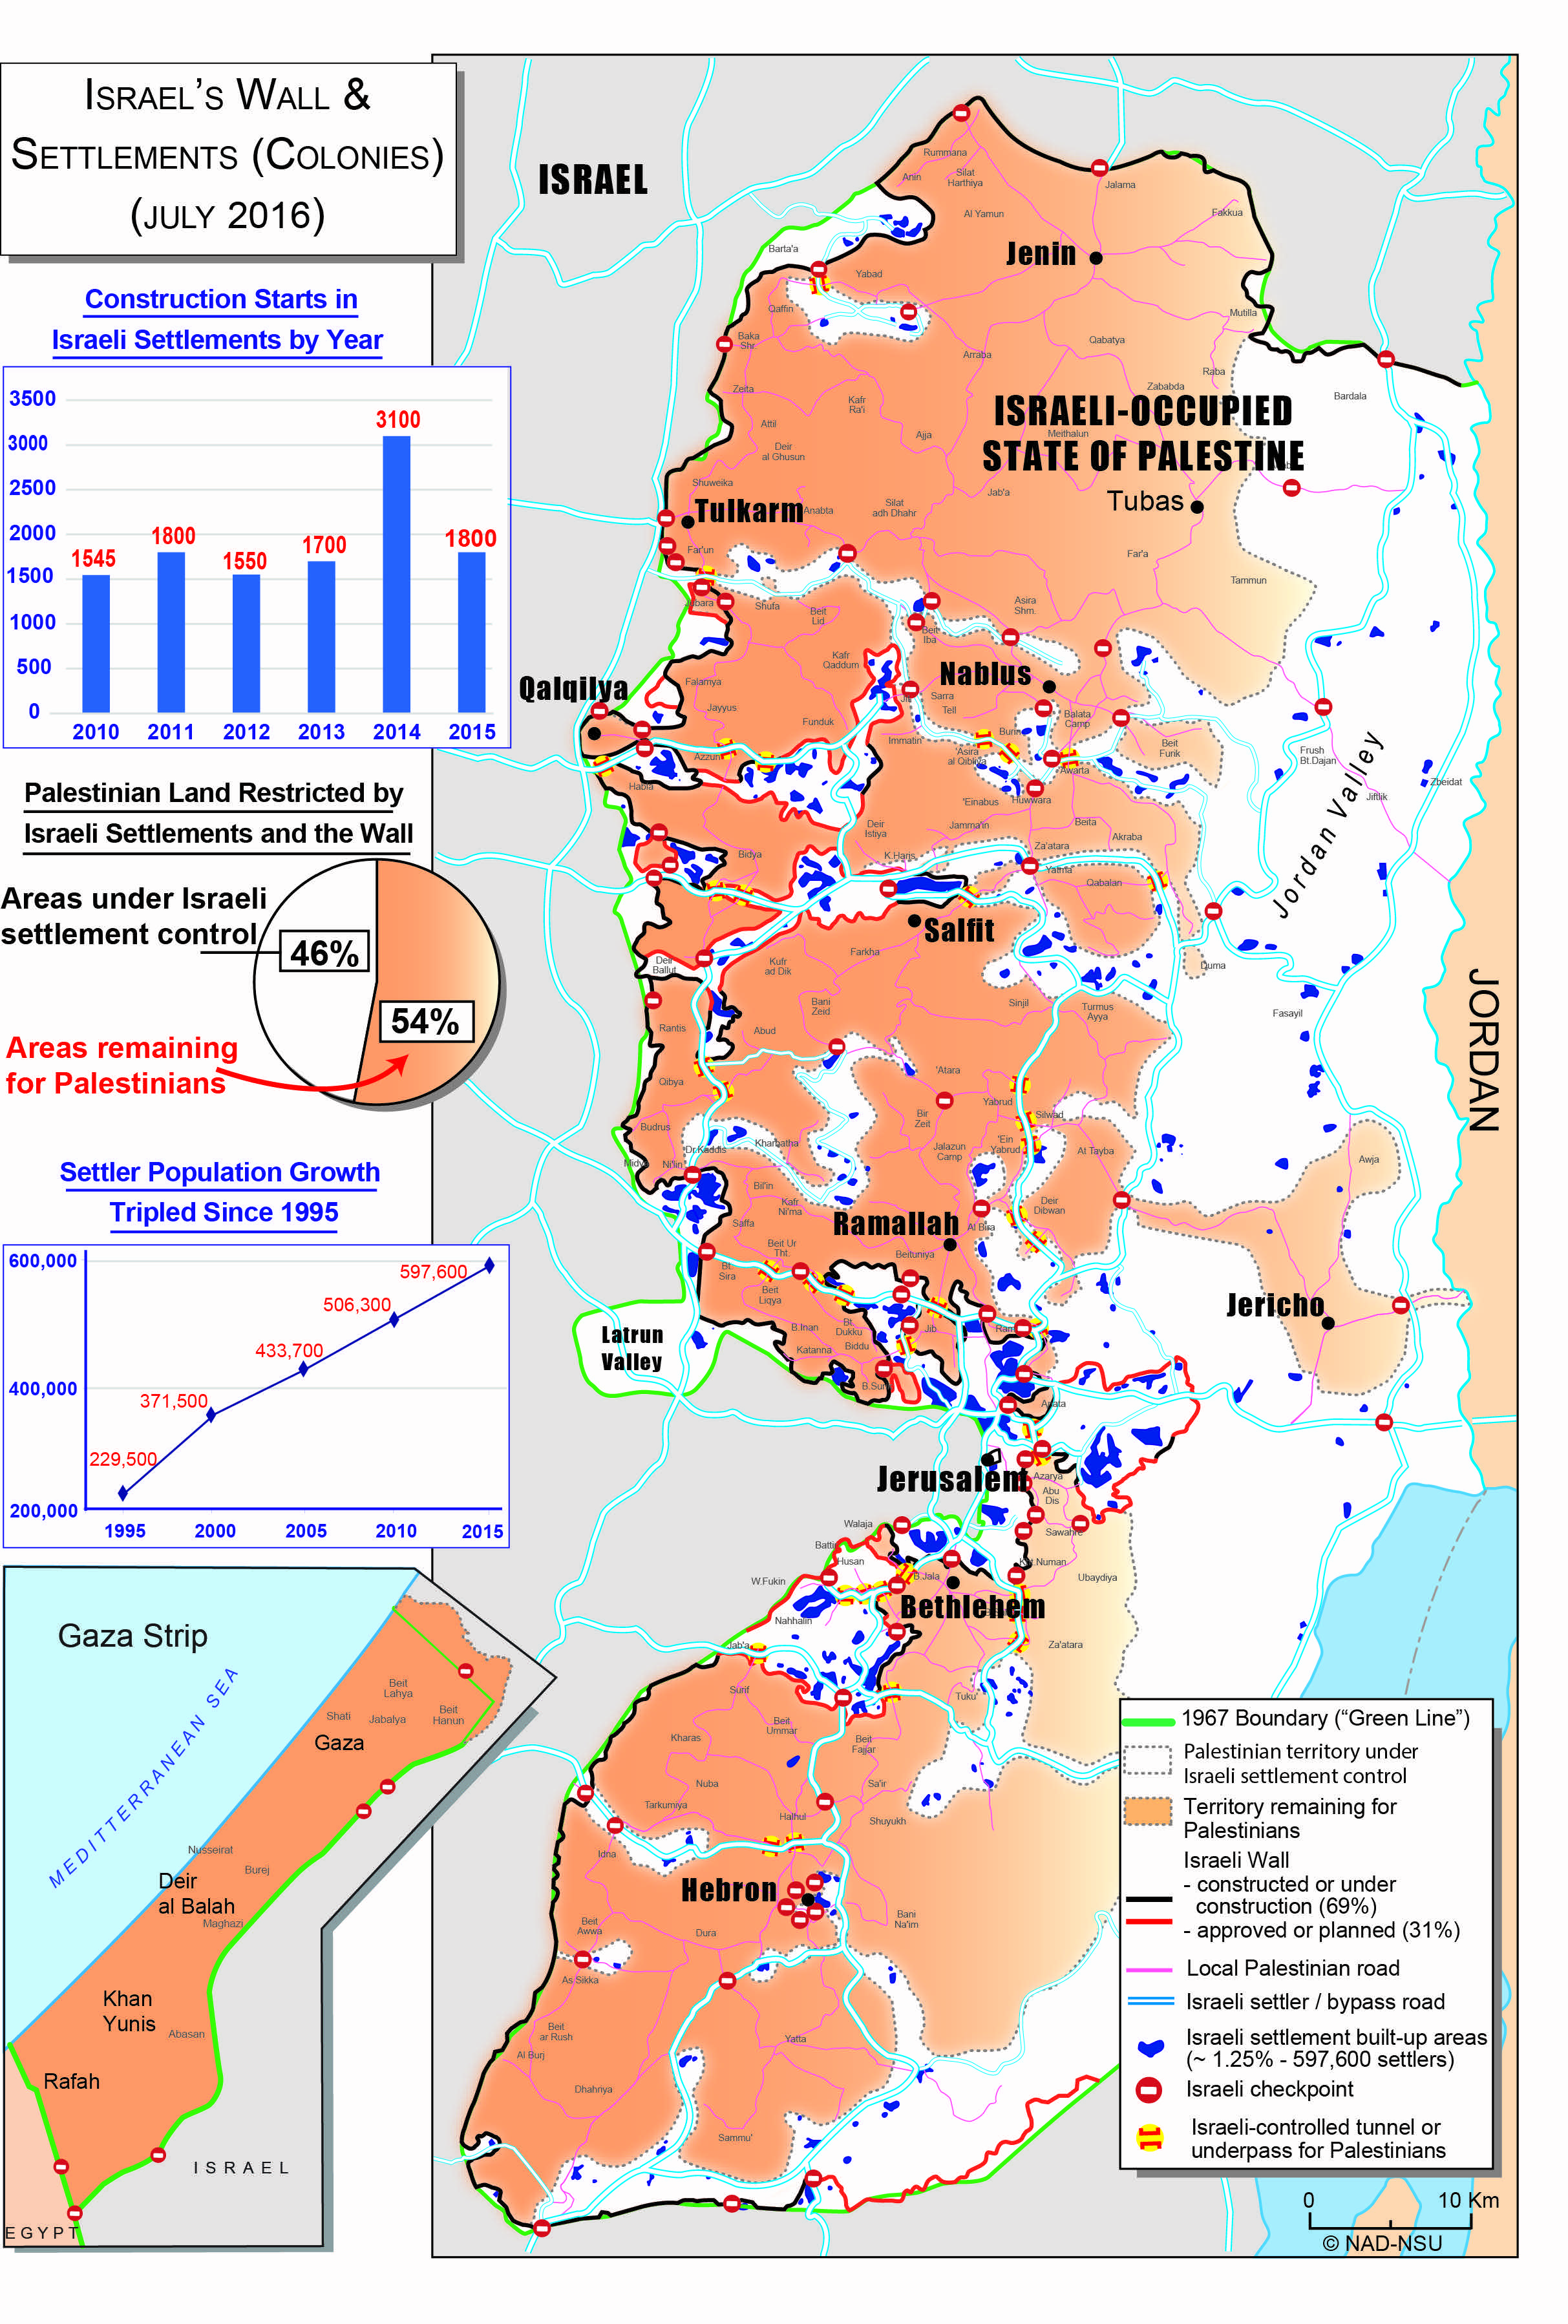 Israel's Wall and Settlements (July 2016) | NAD